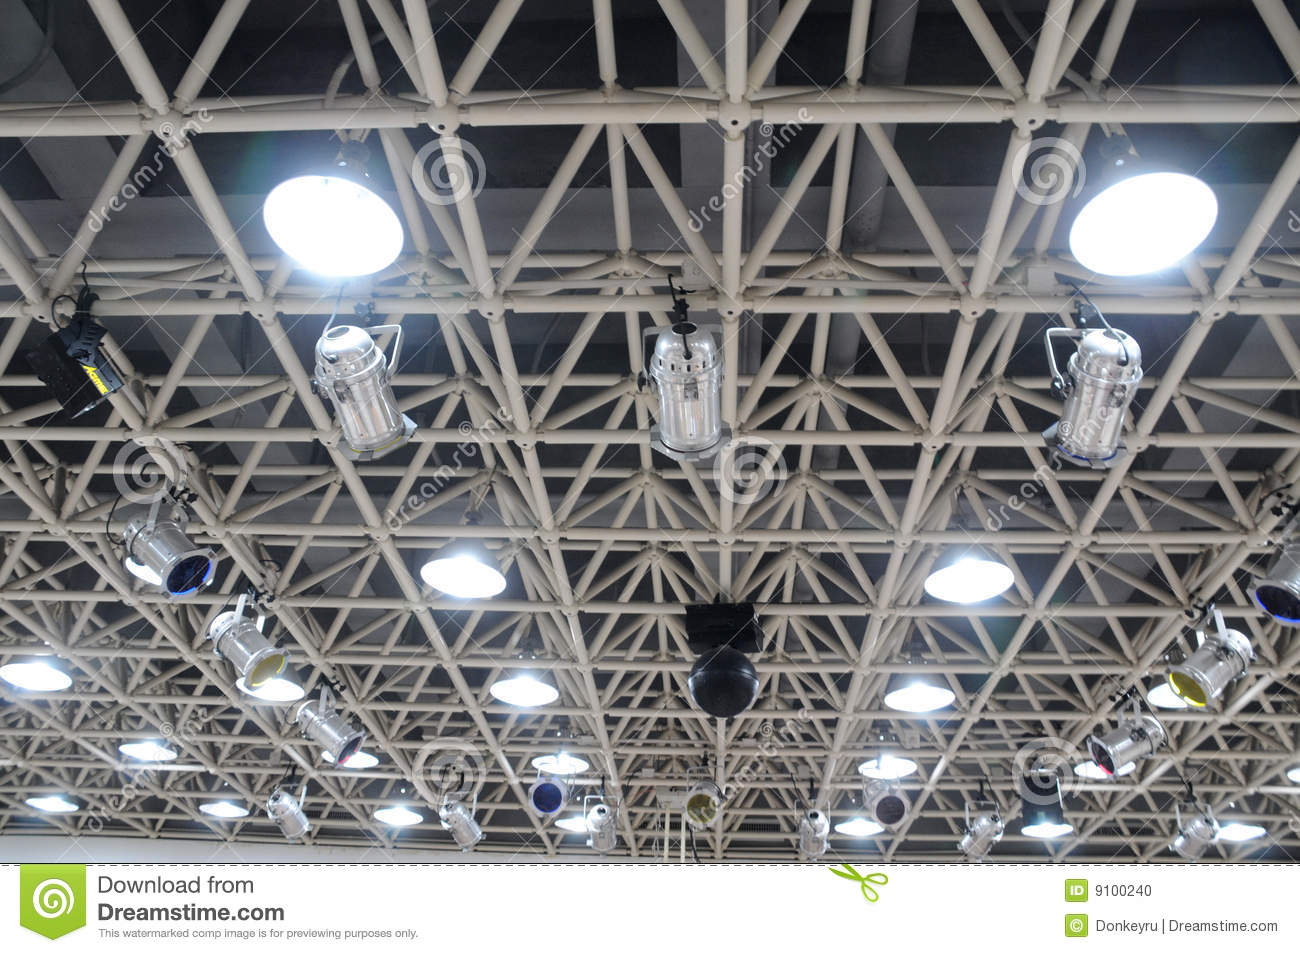 The Theatre Hall Ceiling Lamps Stock Photo Image Of Lighting